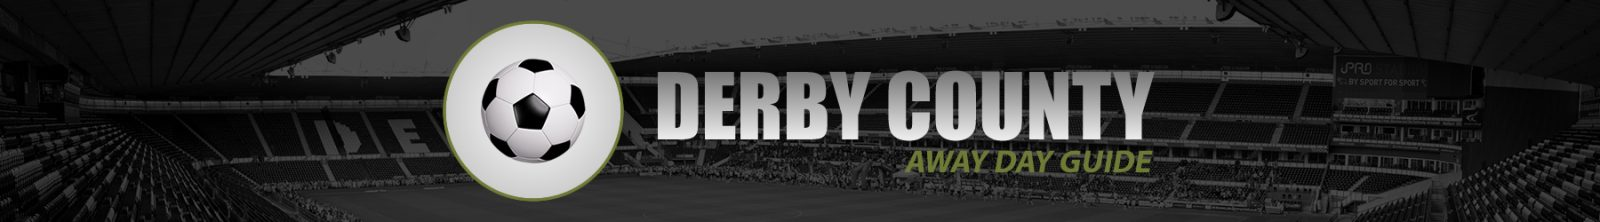 Derby County Away